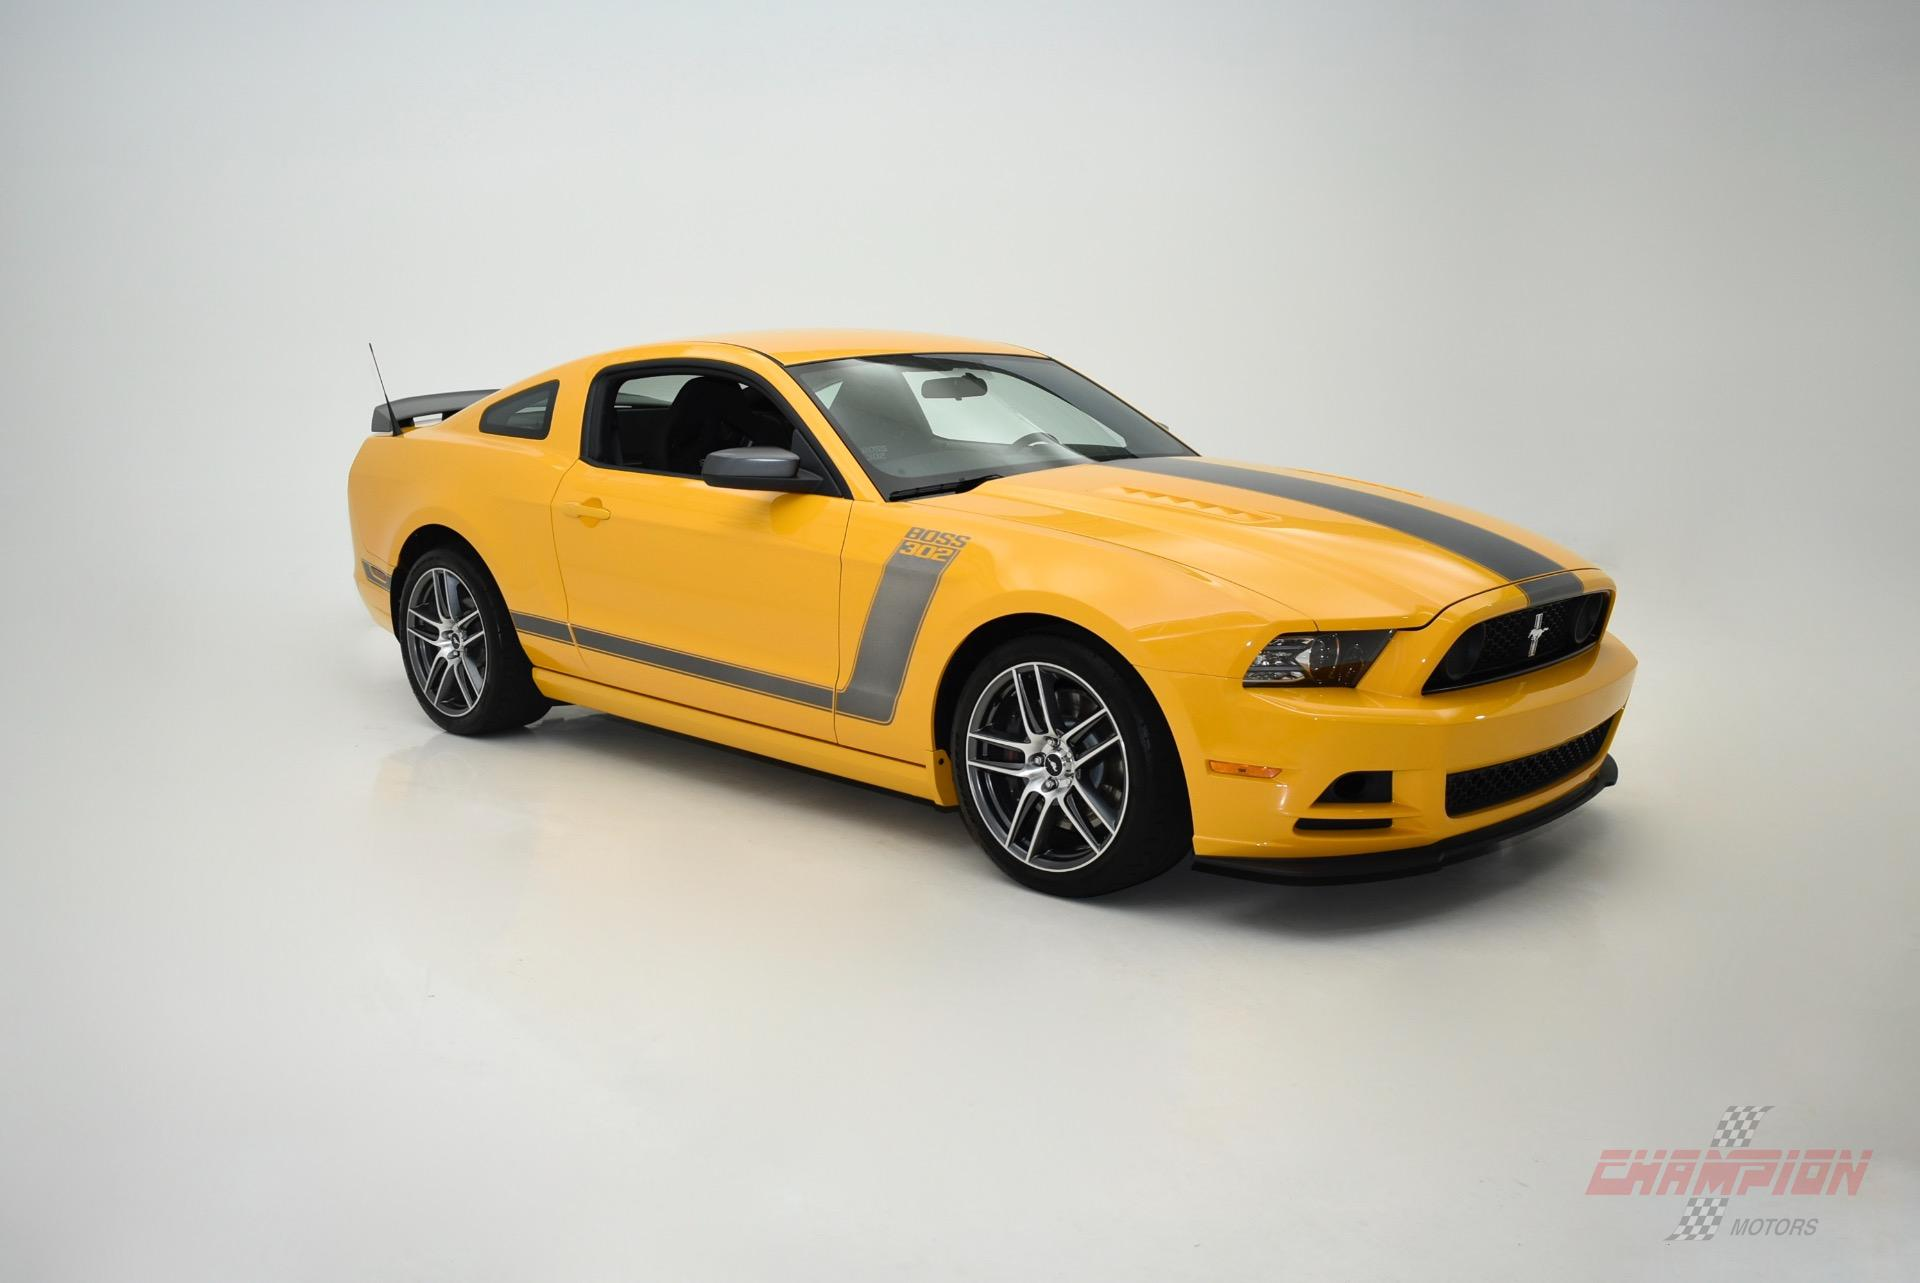 2013 ford mustang boss 302 laguna seca exotic and classic car dealership specializing in. Black Bedroom Furniture Sets. Home Design Ideas